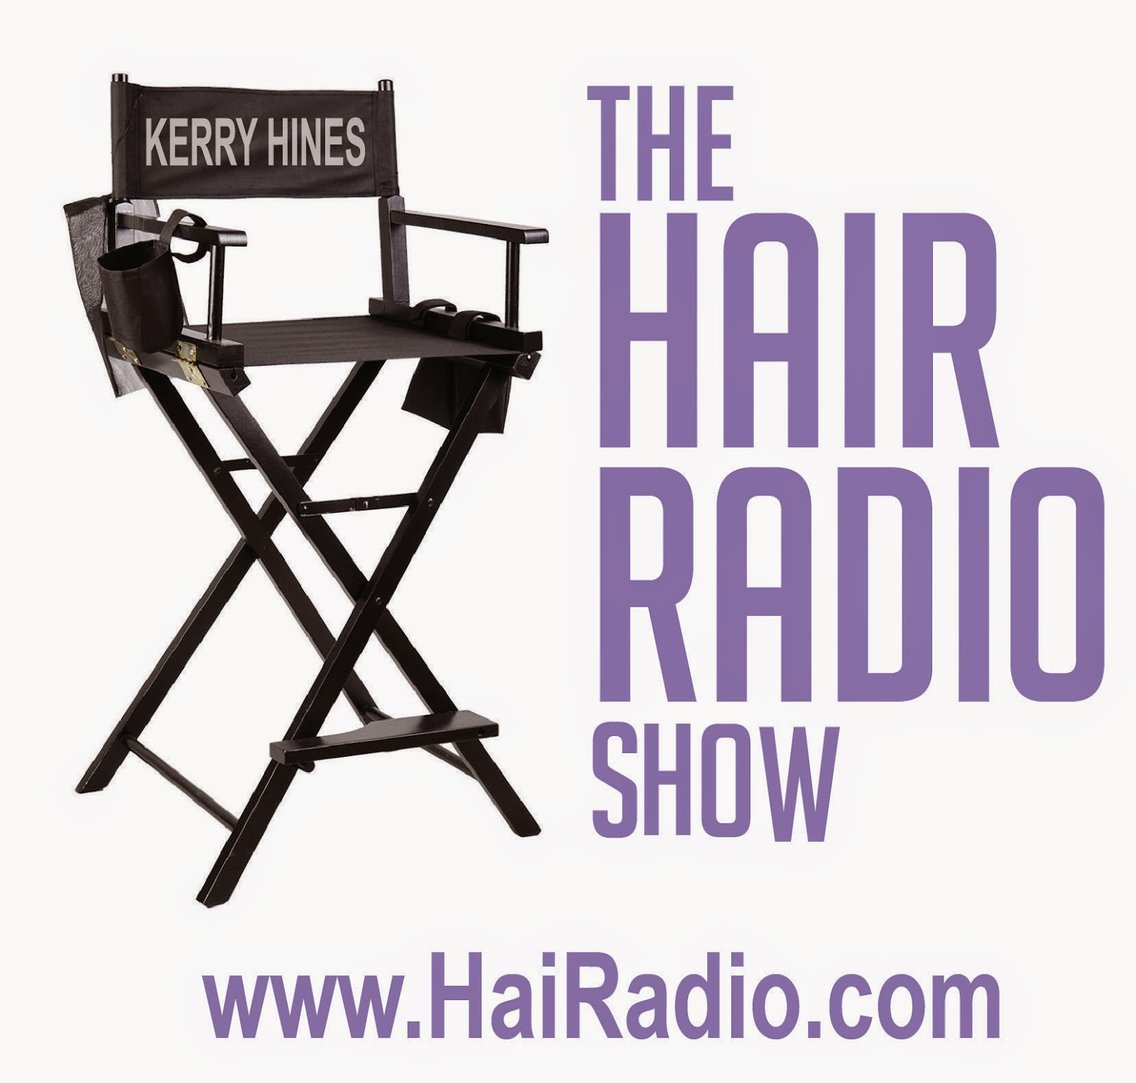 THE HAIR MORNING SHOW WIT' KERRY HINES - Cover Image